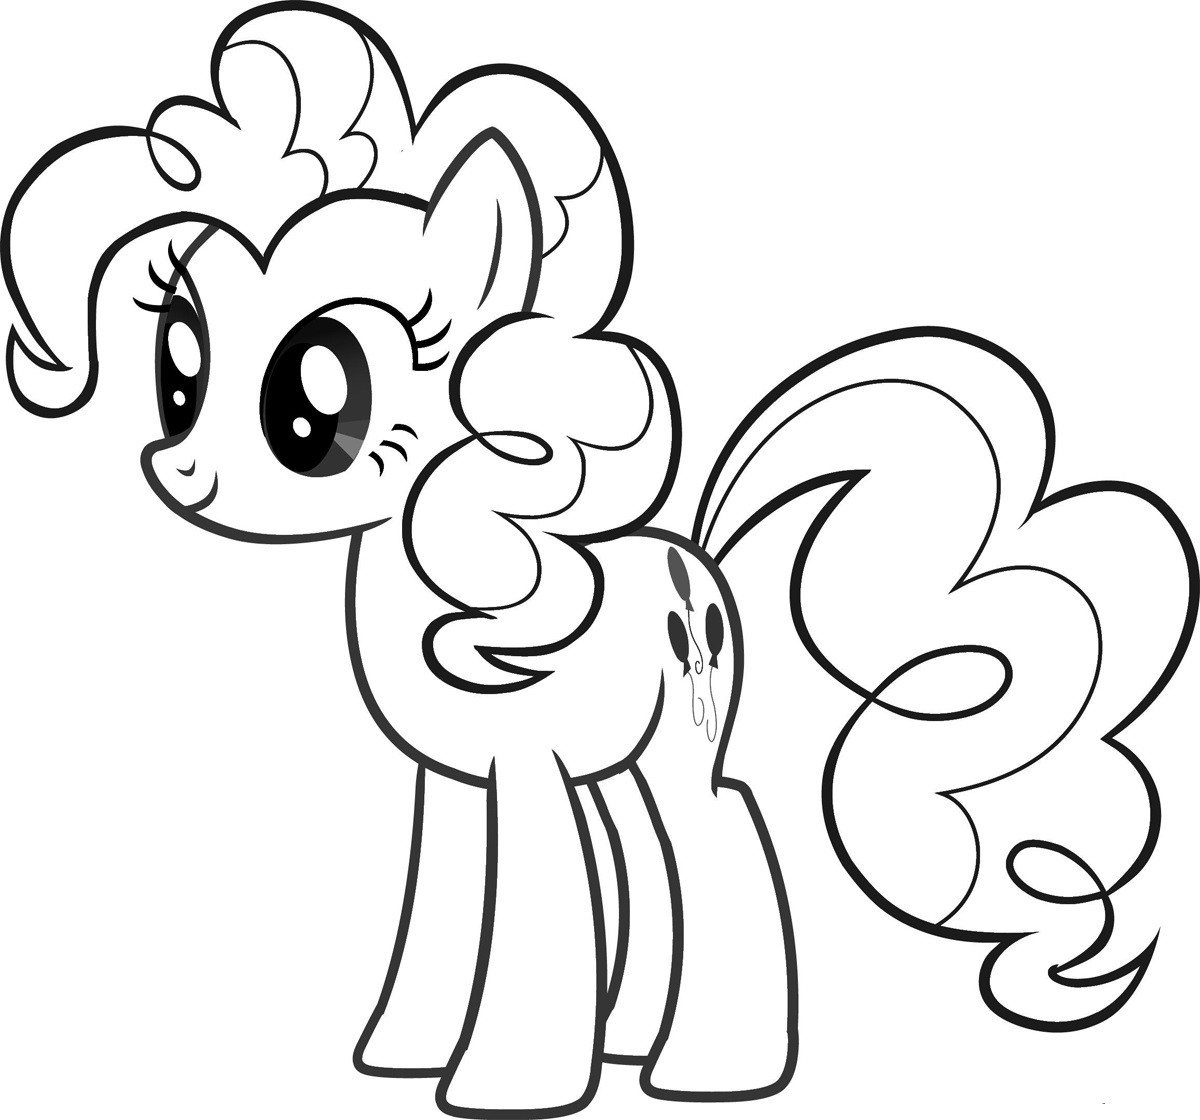 Best ideas about Pinky Pie Coloring Pages For Girls . Save or Pin Pinkie Pie pony coloring pages for girls to print for free Now.